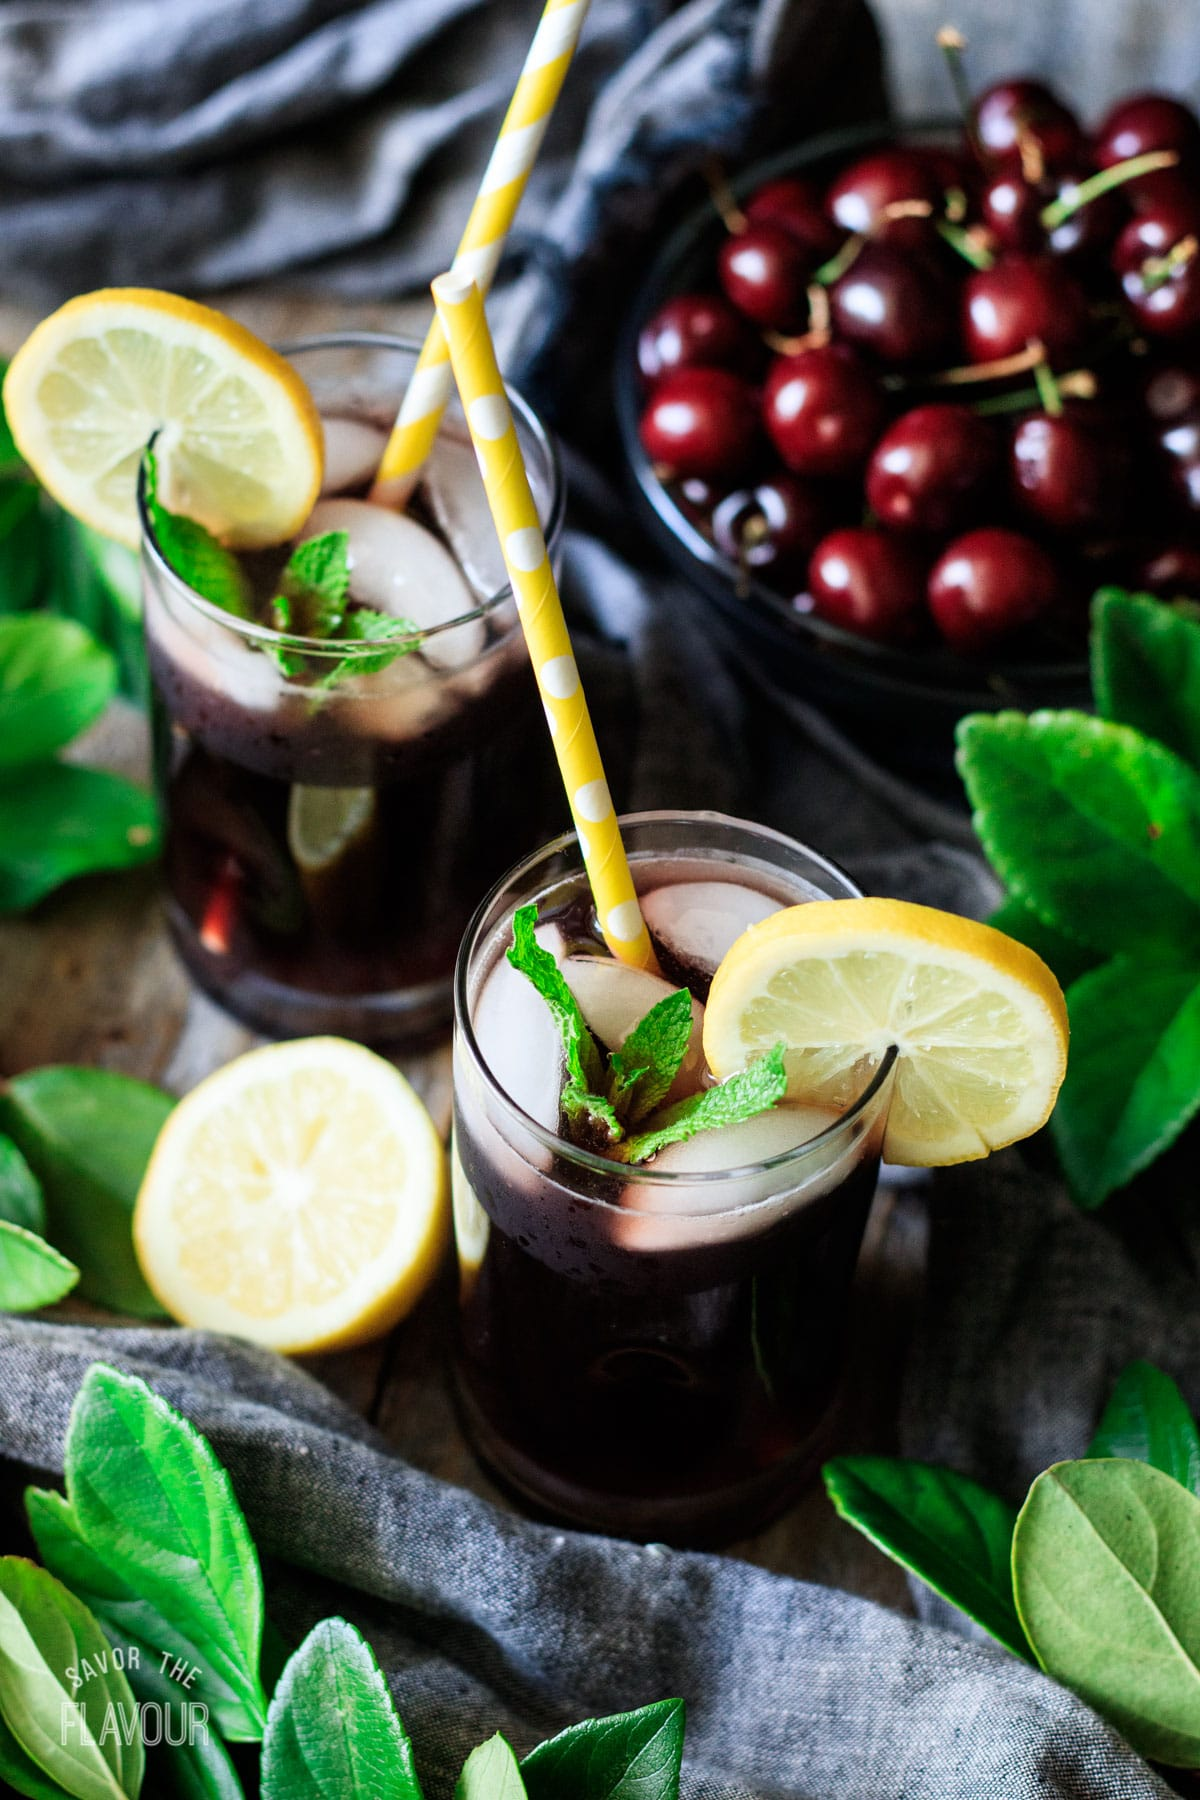 two glasses of cherry lemonade garnished with mint and lemon